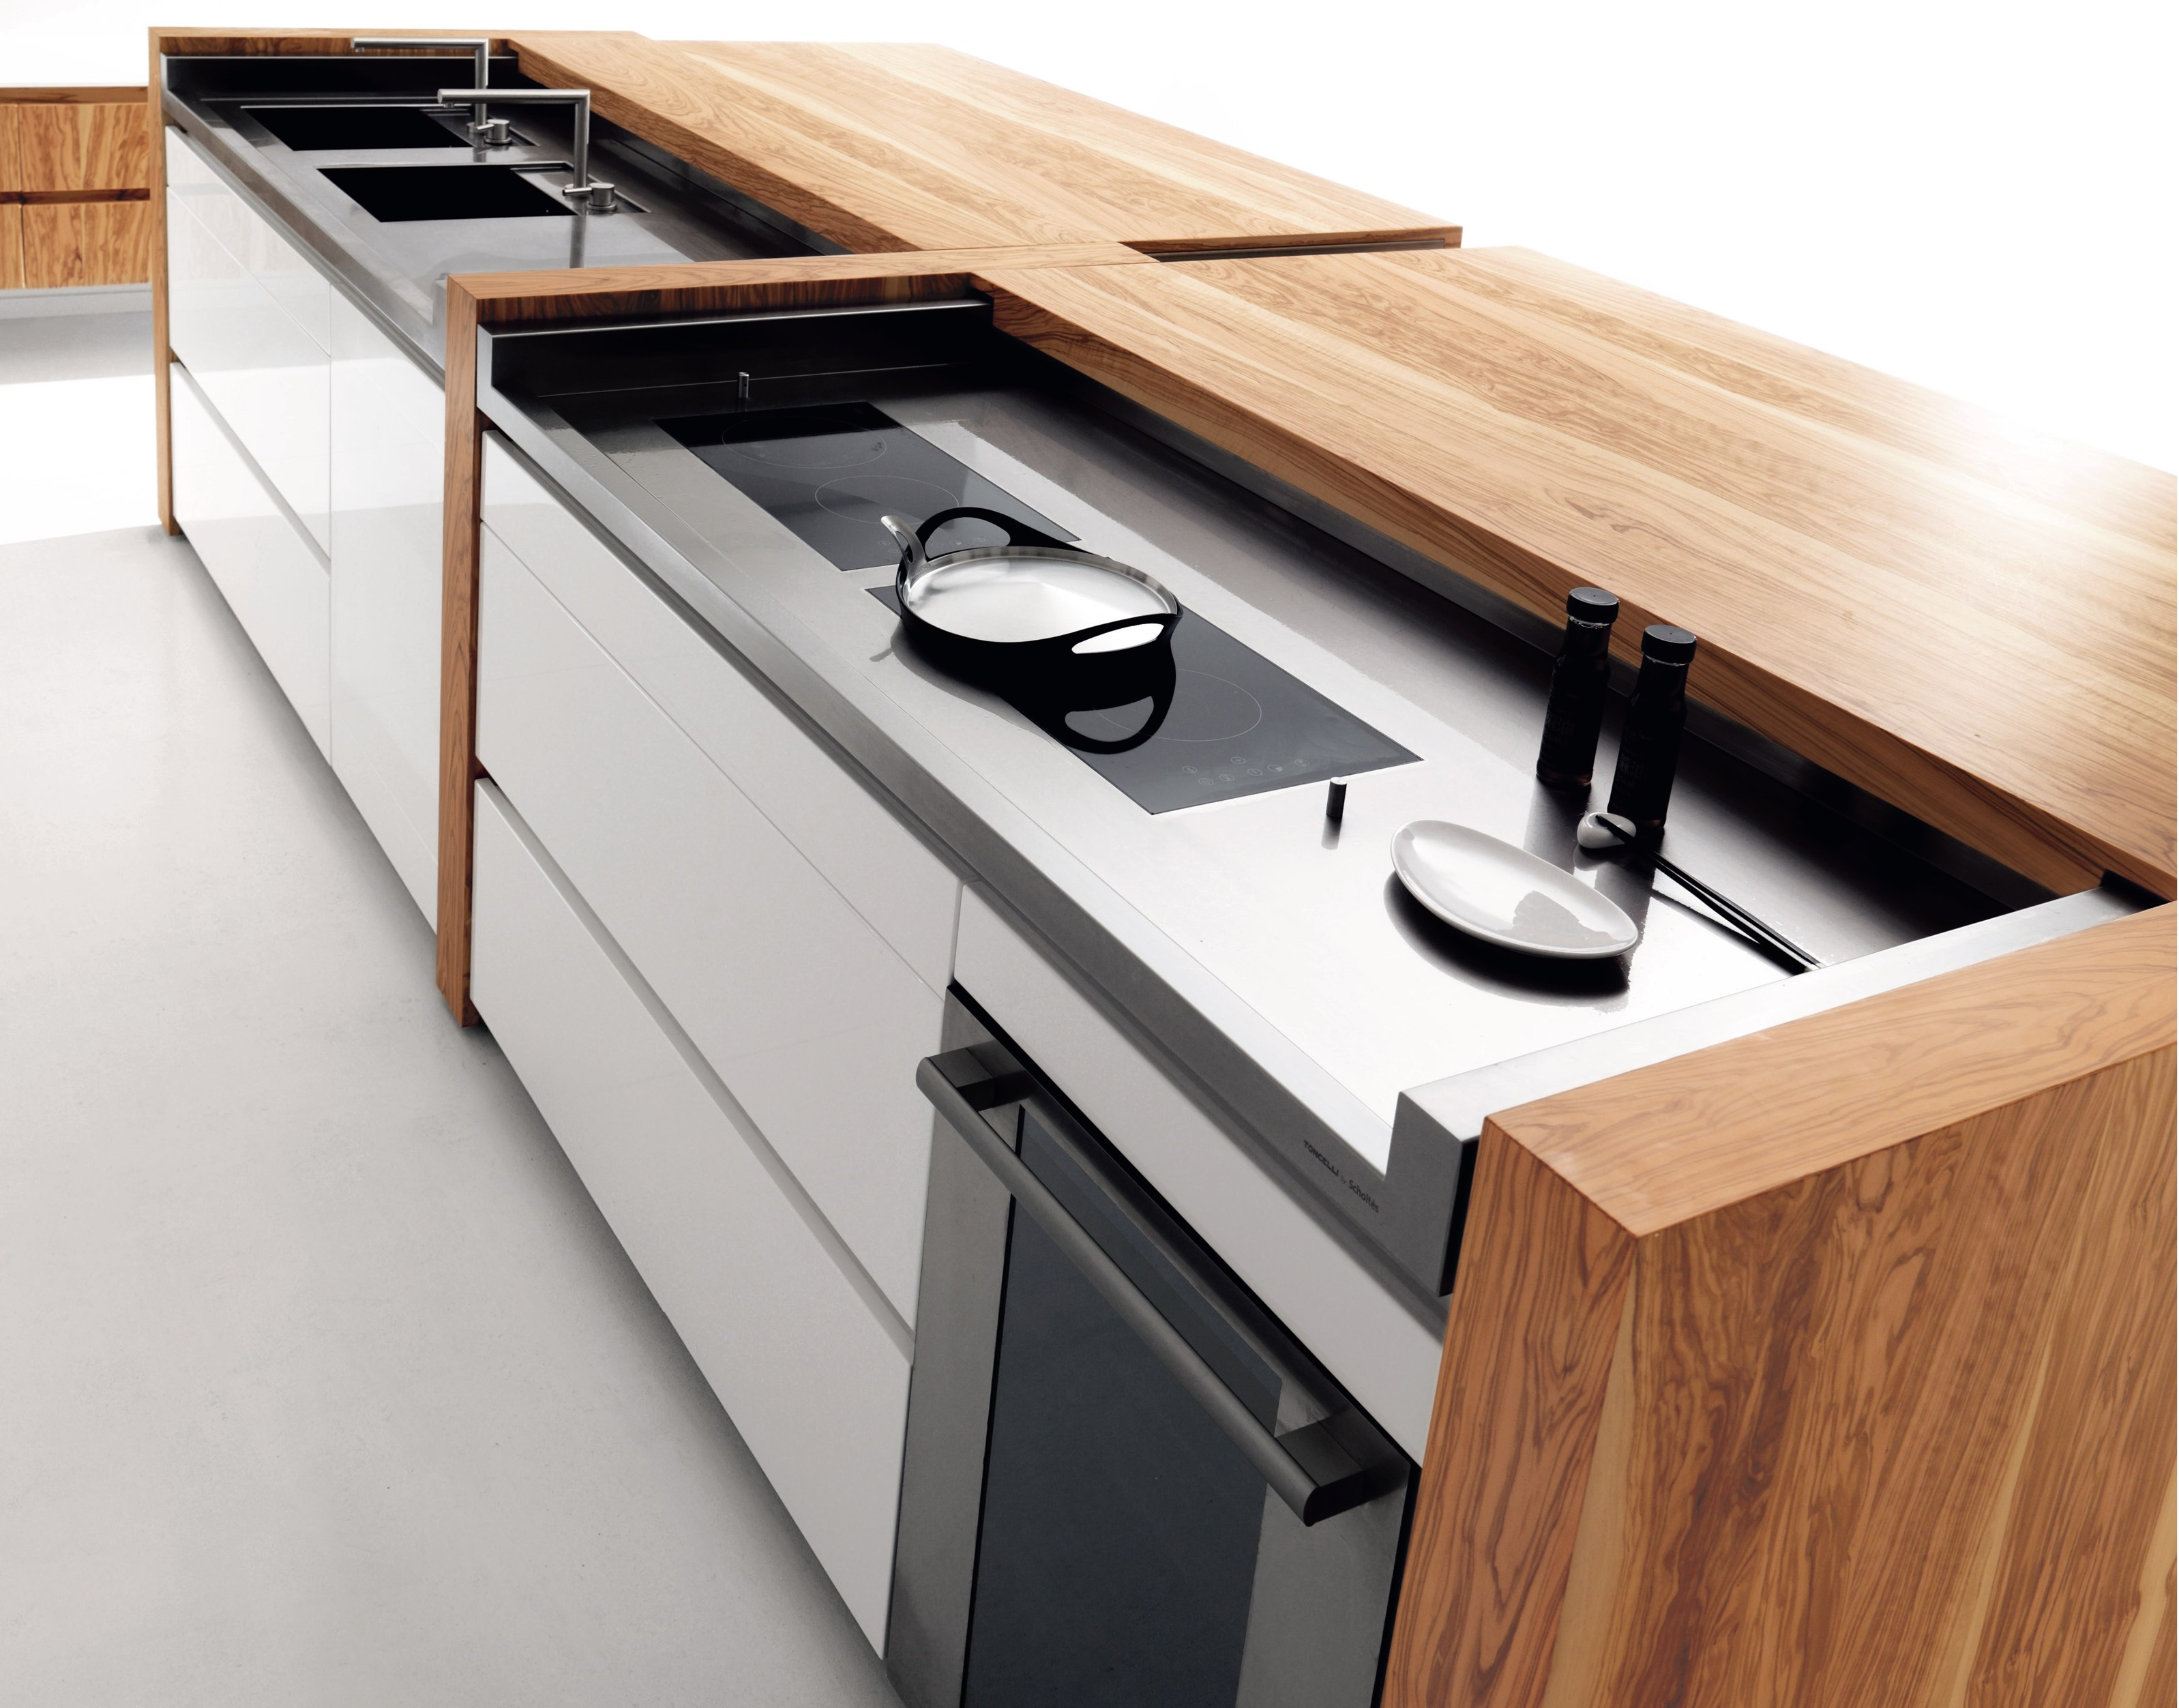 Olive wood kitchen with island essential wood by toncelli cucine - Cucine toncelli ...